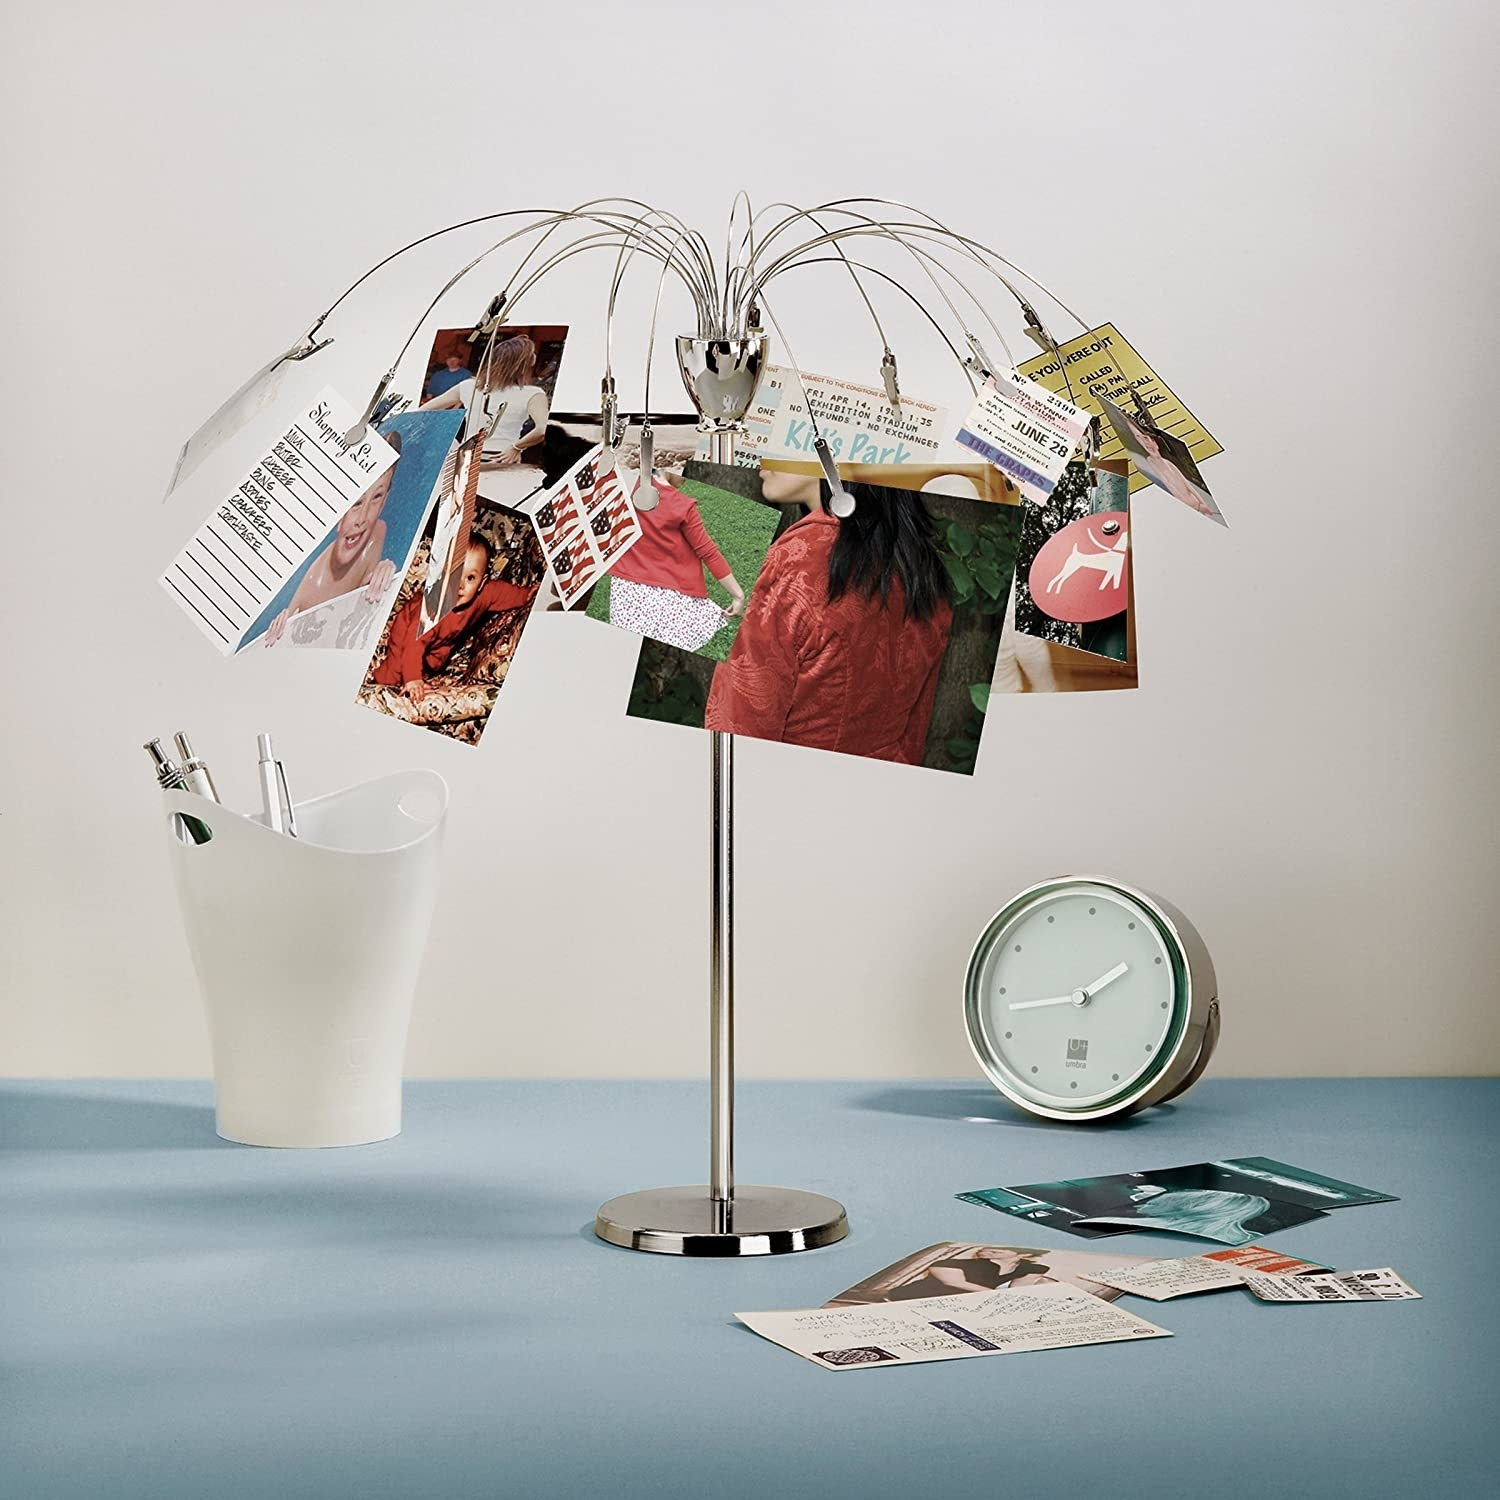 the metal photo tree holding photos and strips of paper